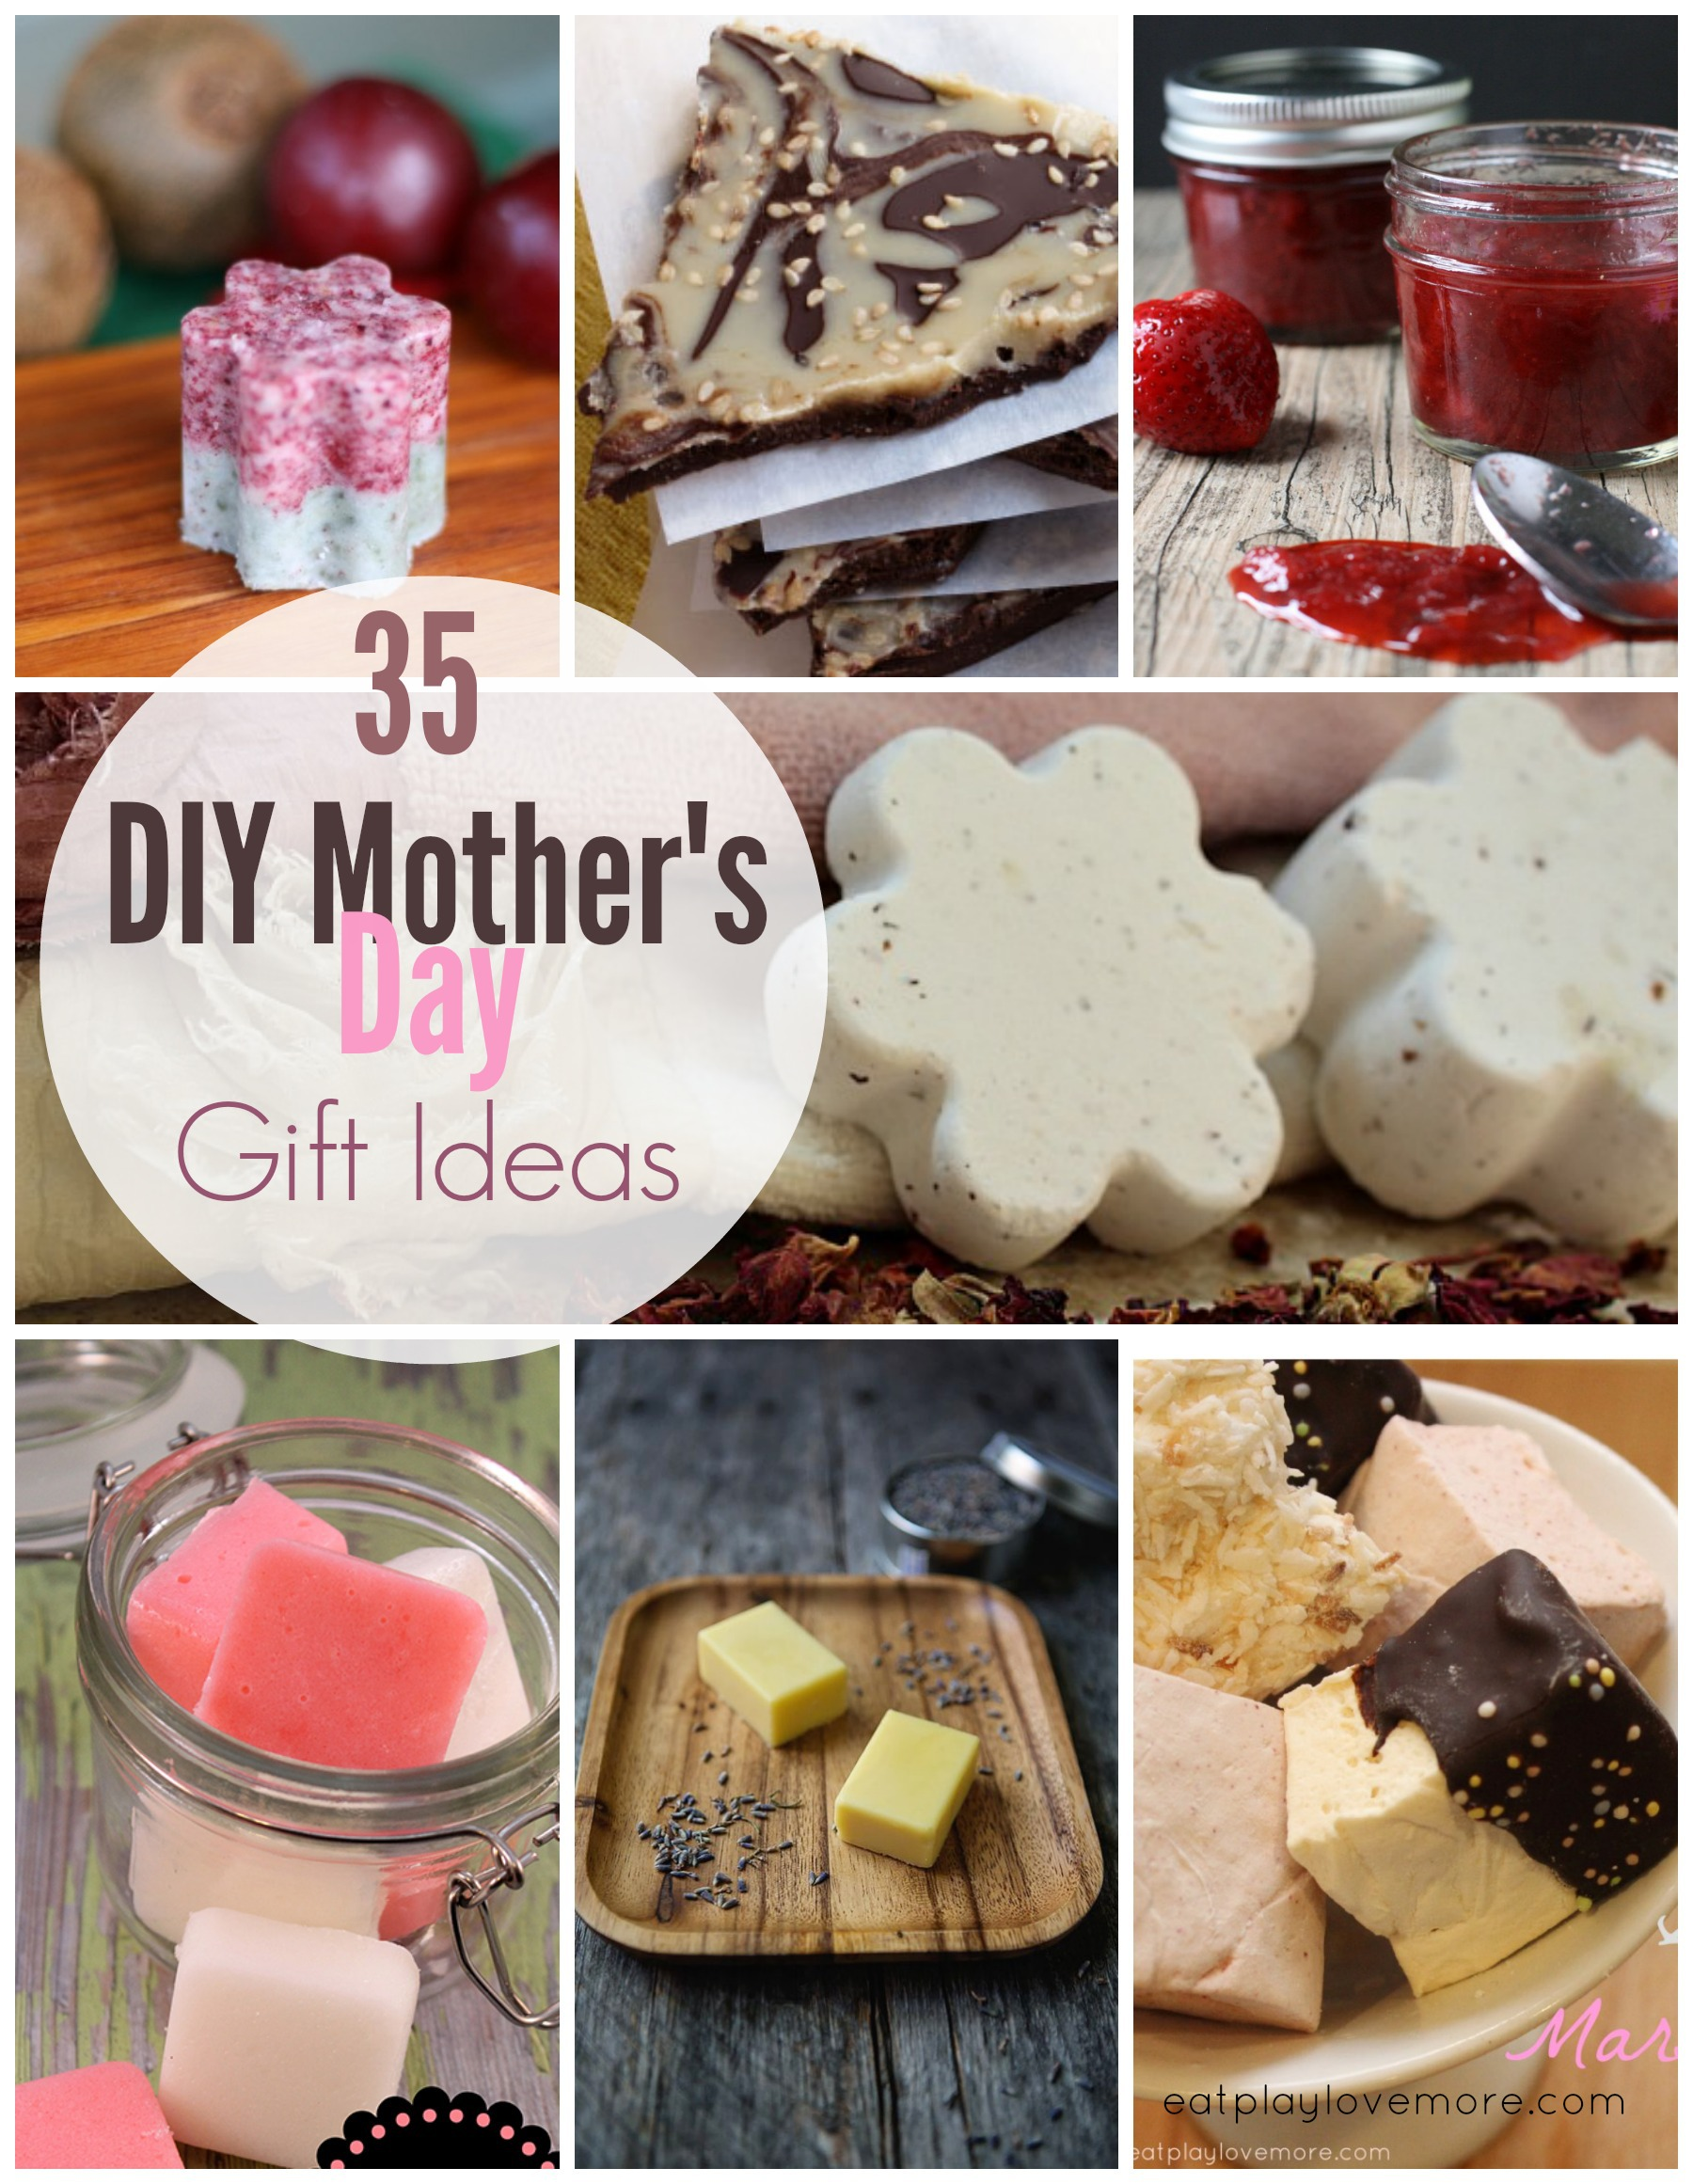 35 DIY Mother's Day Gift Ideas | Eat. Play. Love... More